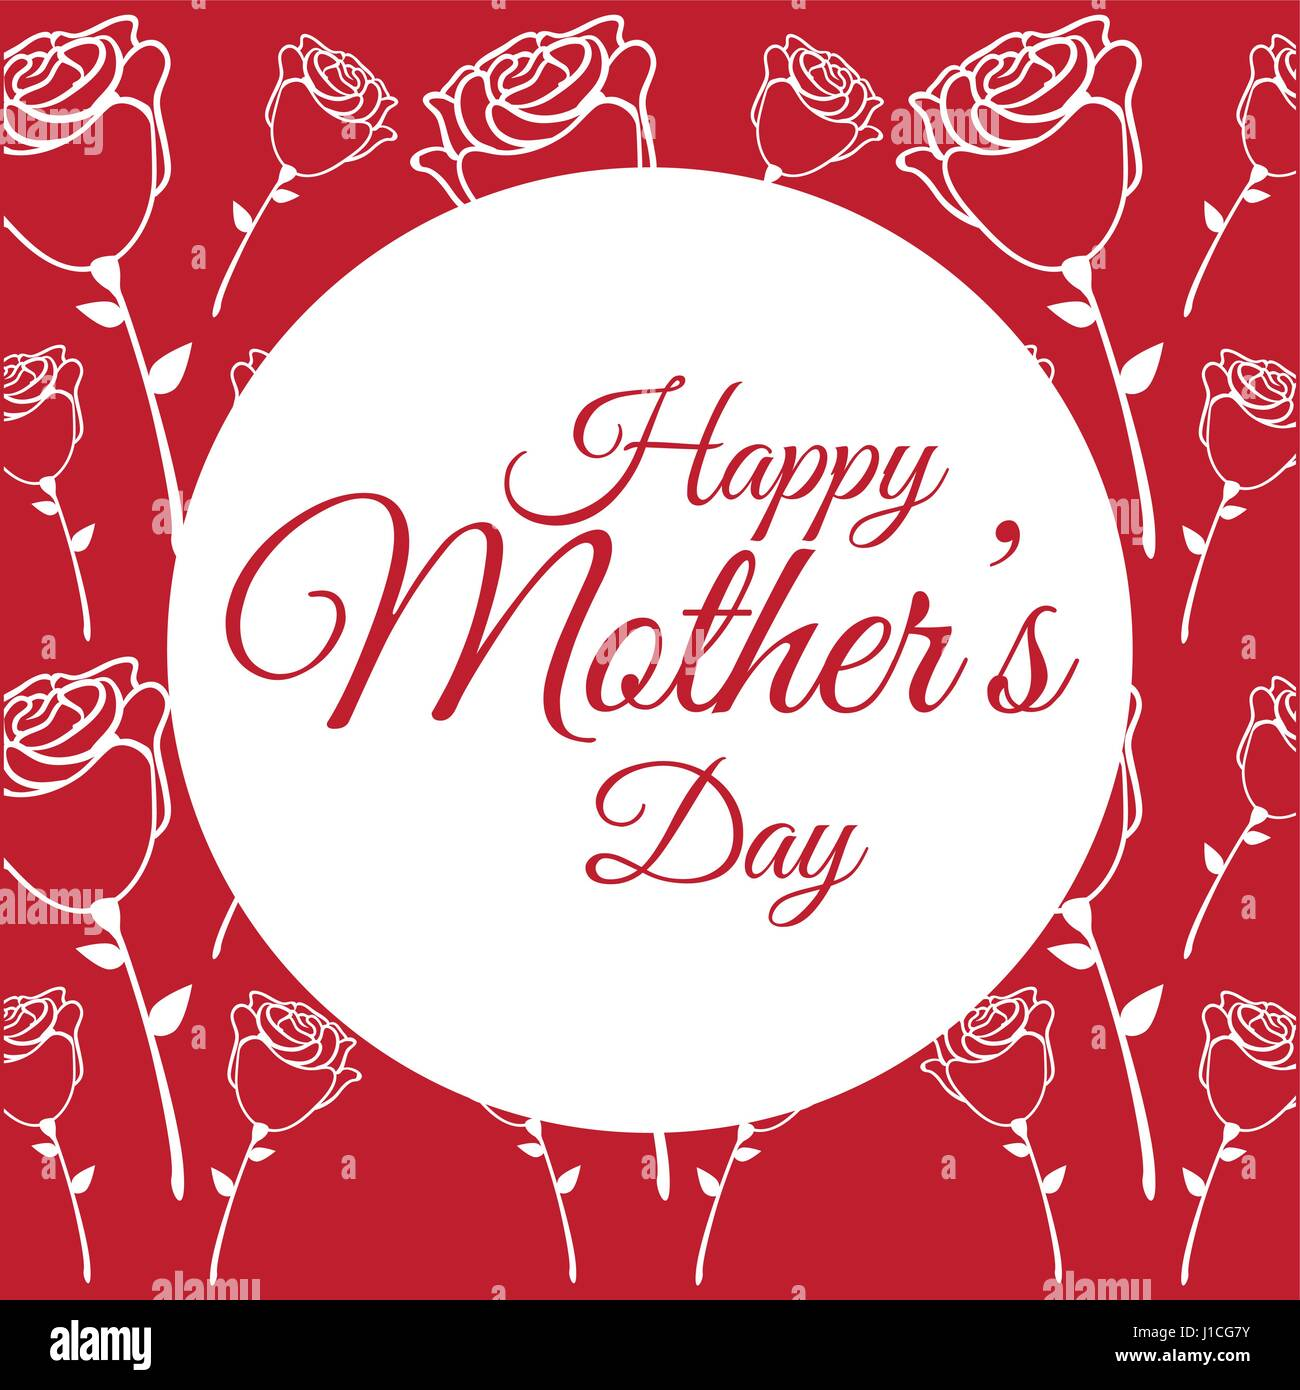 Mothers Day Card Roses Stockfotos & Mothers Day Card Roses Bilder ...